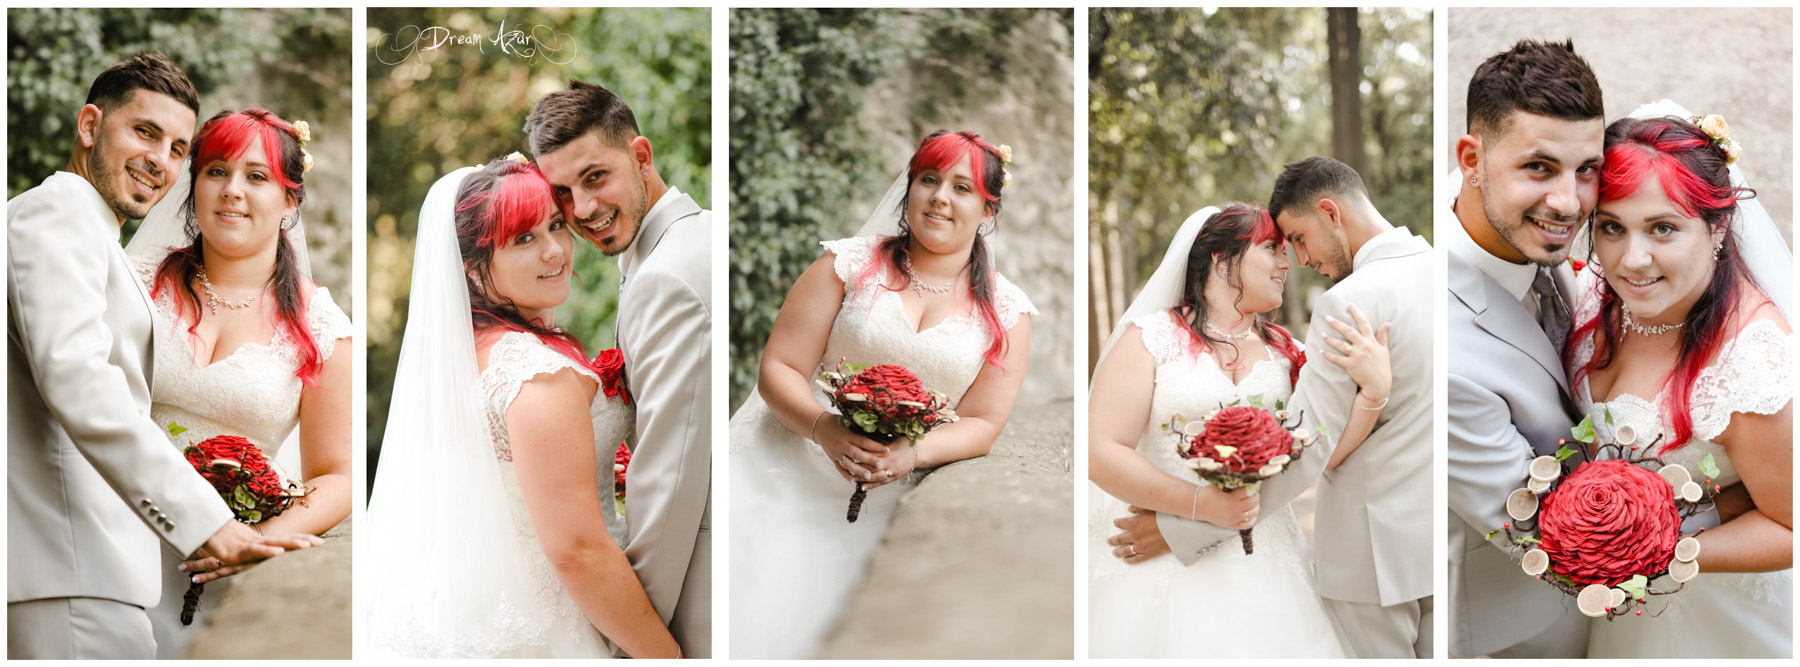 190824COMPO-Mariage-Cindy-et-Anthony-65